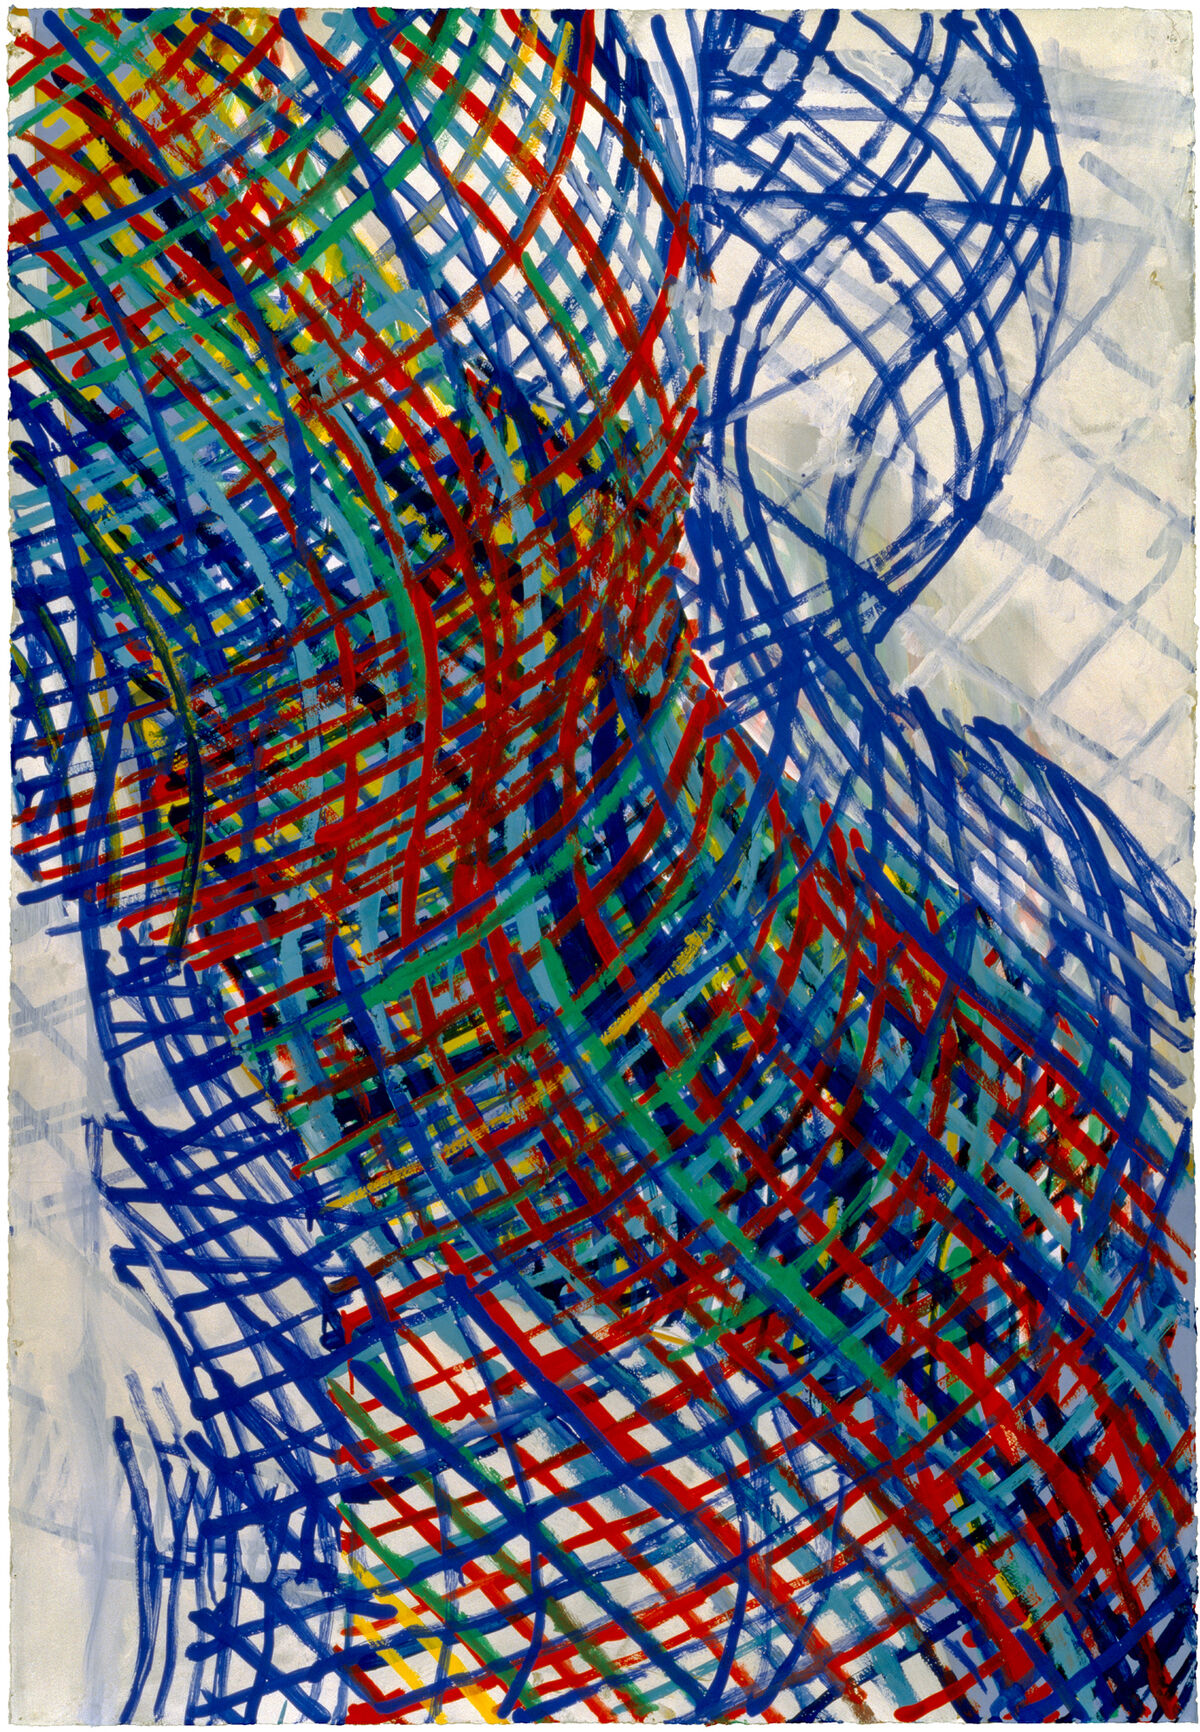 Terry Winters, Untitled (1), 1999. © Terry Winters. Courtesy of Matthew Marks Gallery.